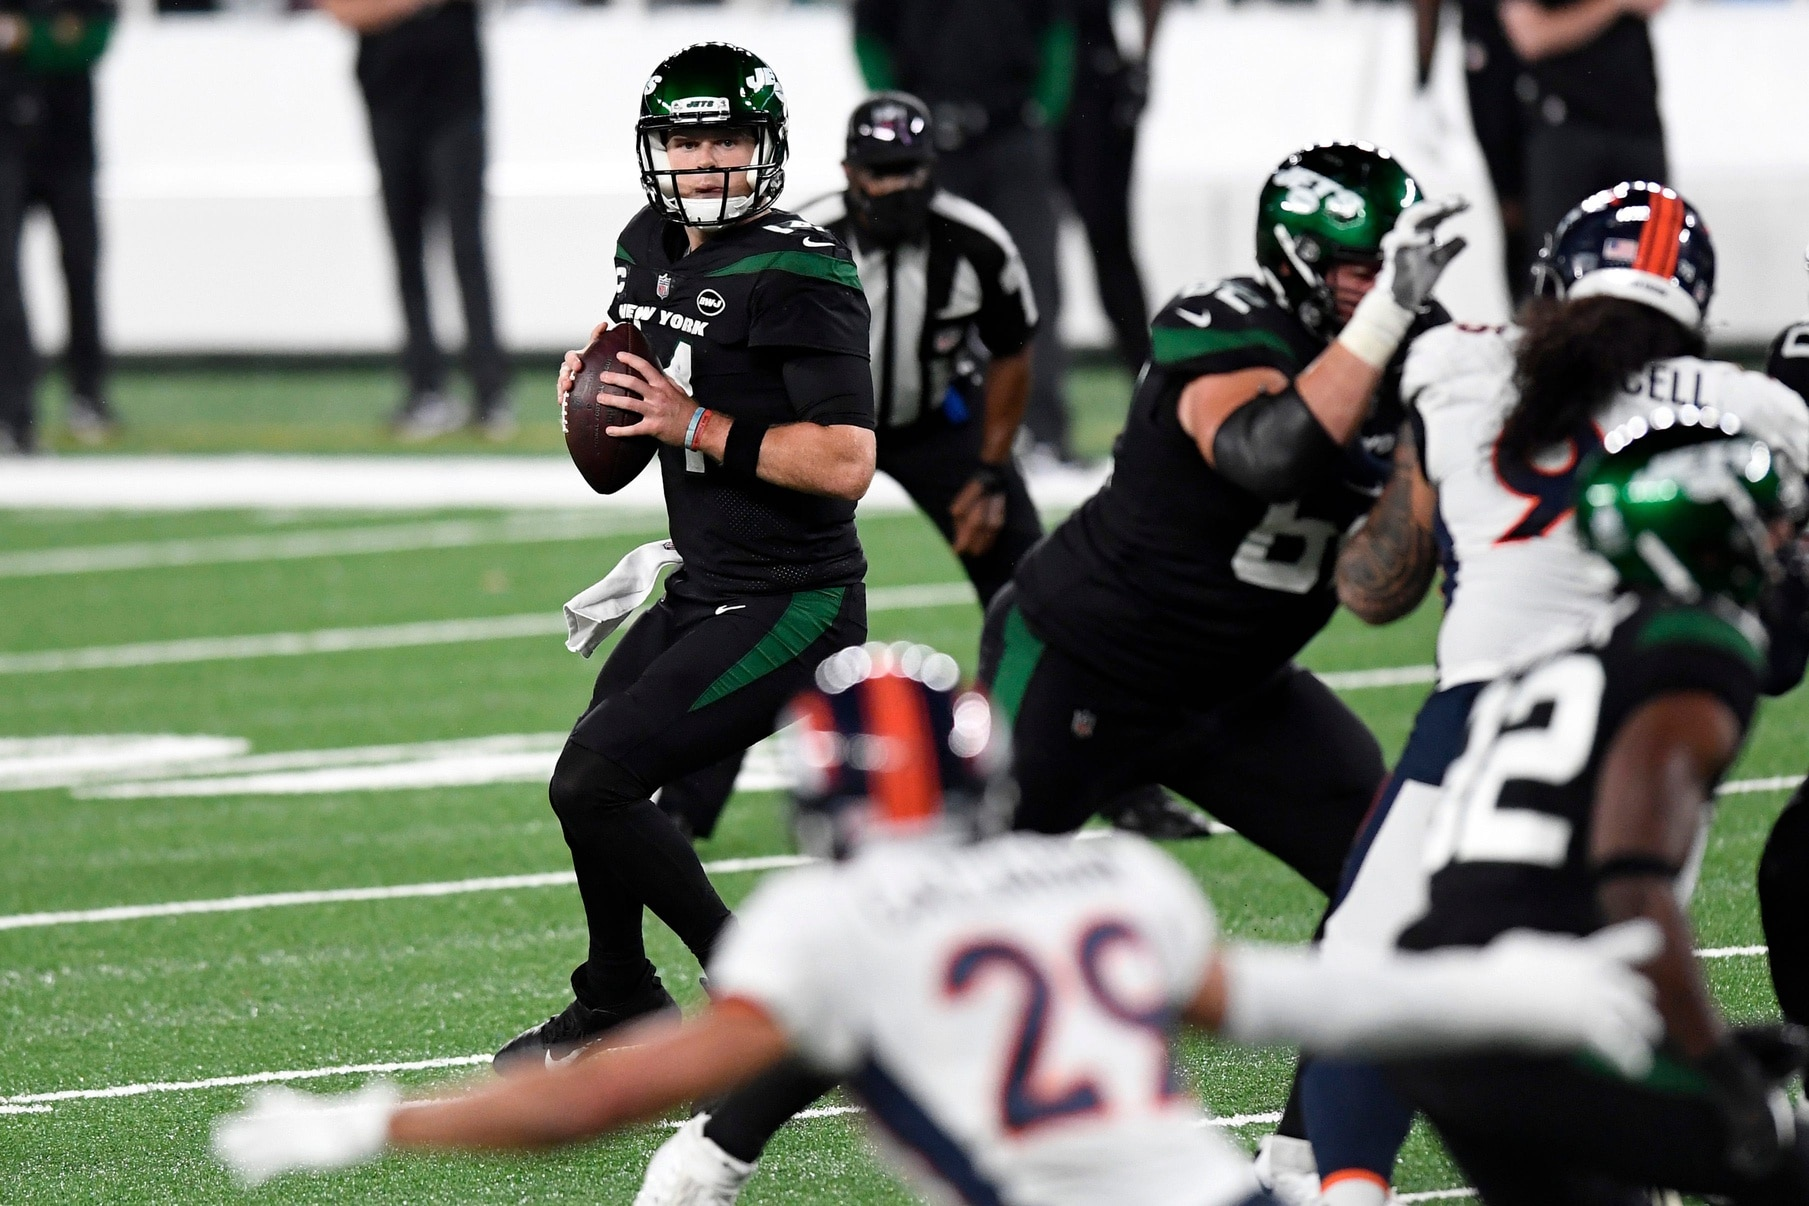 Nfl Ratings Broncos Jets Thursday Night Football Draws Steady Numbers In Week 4